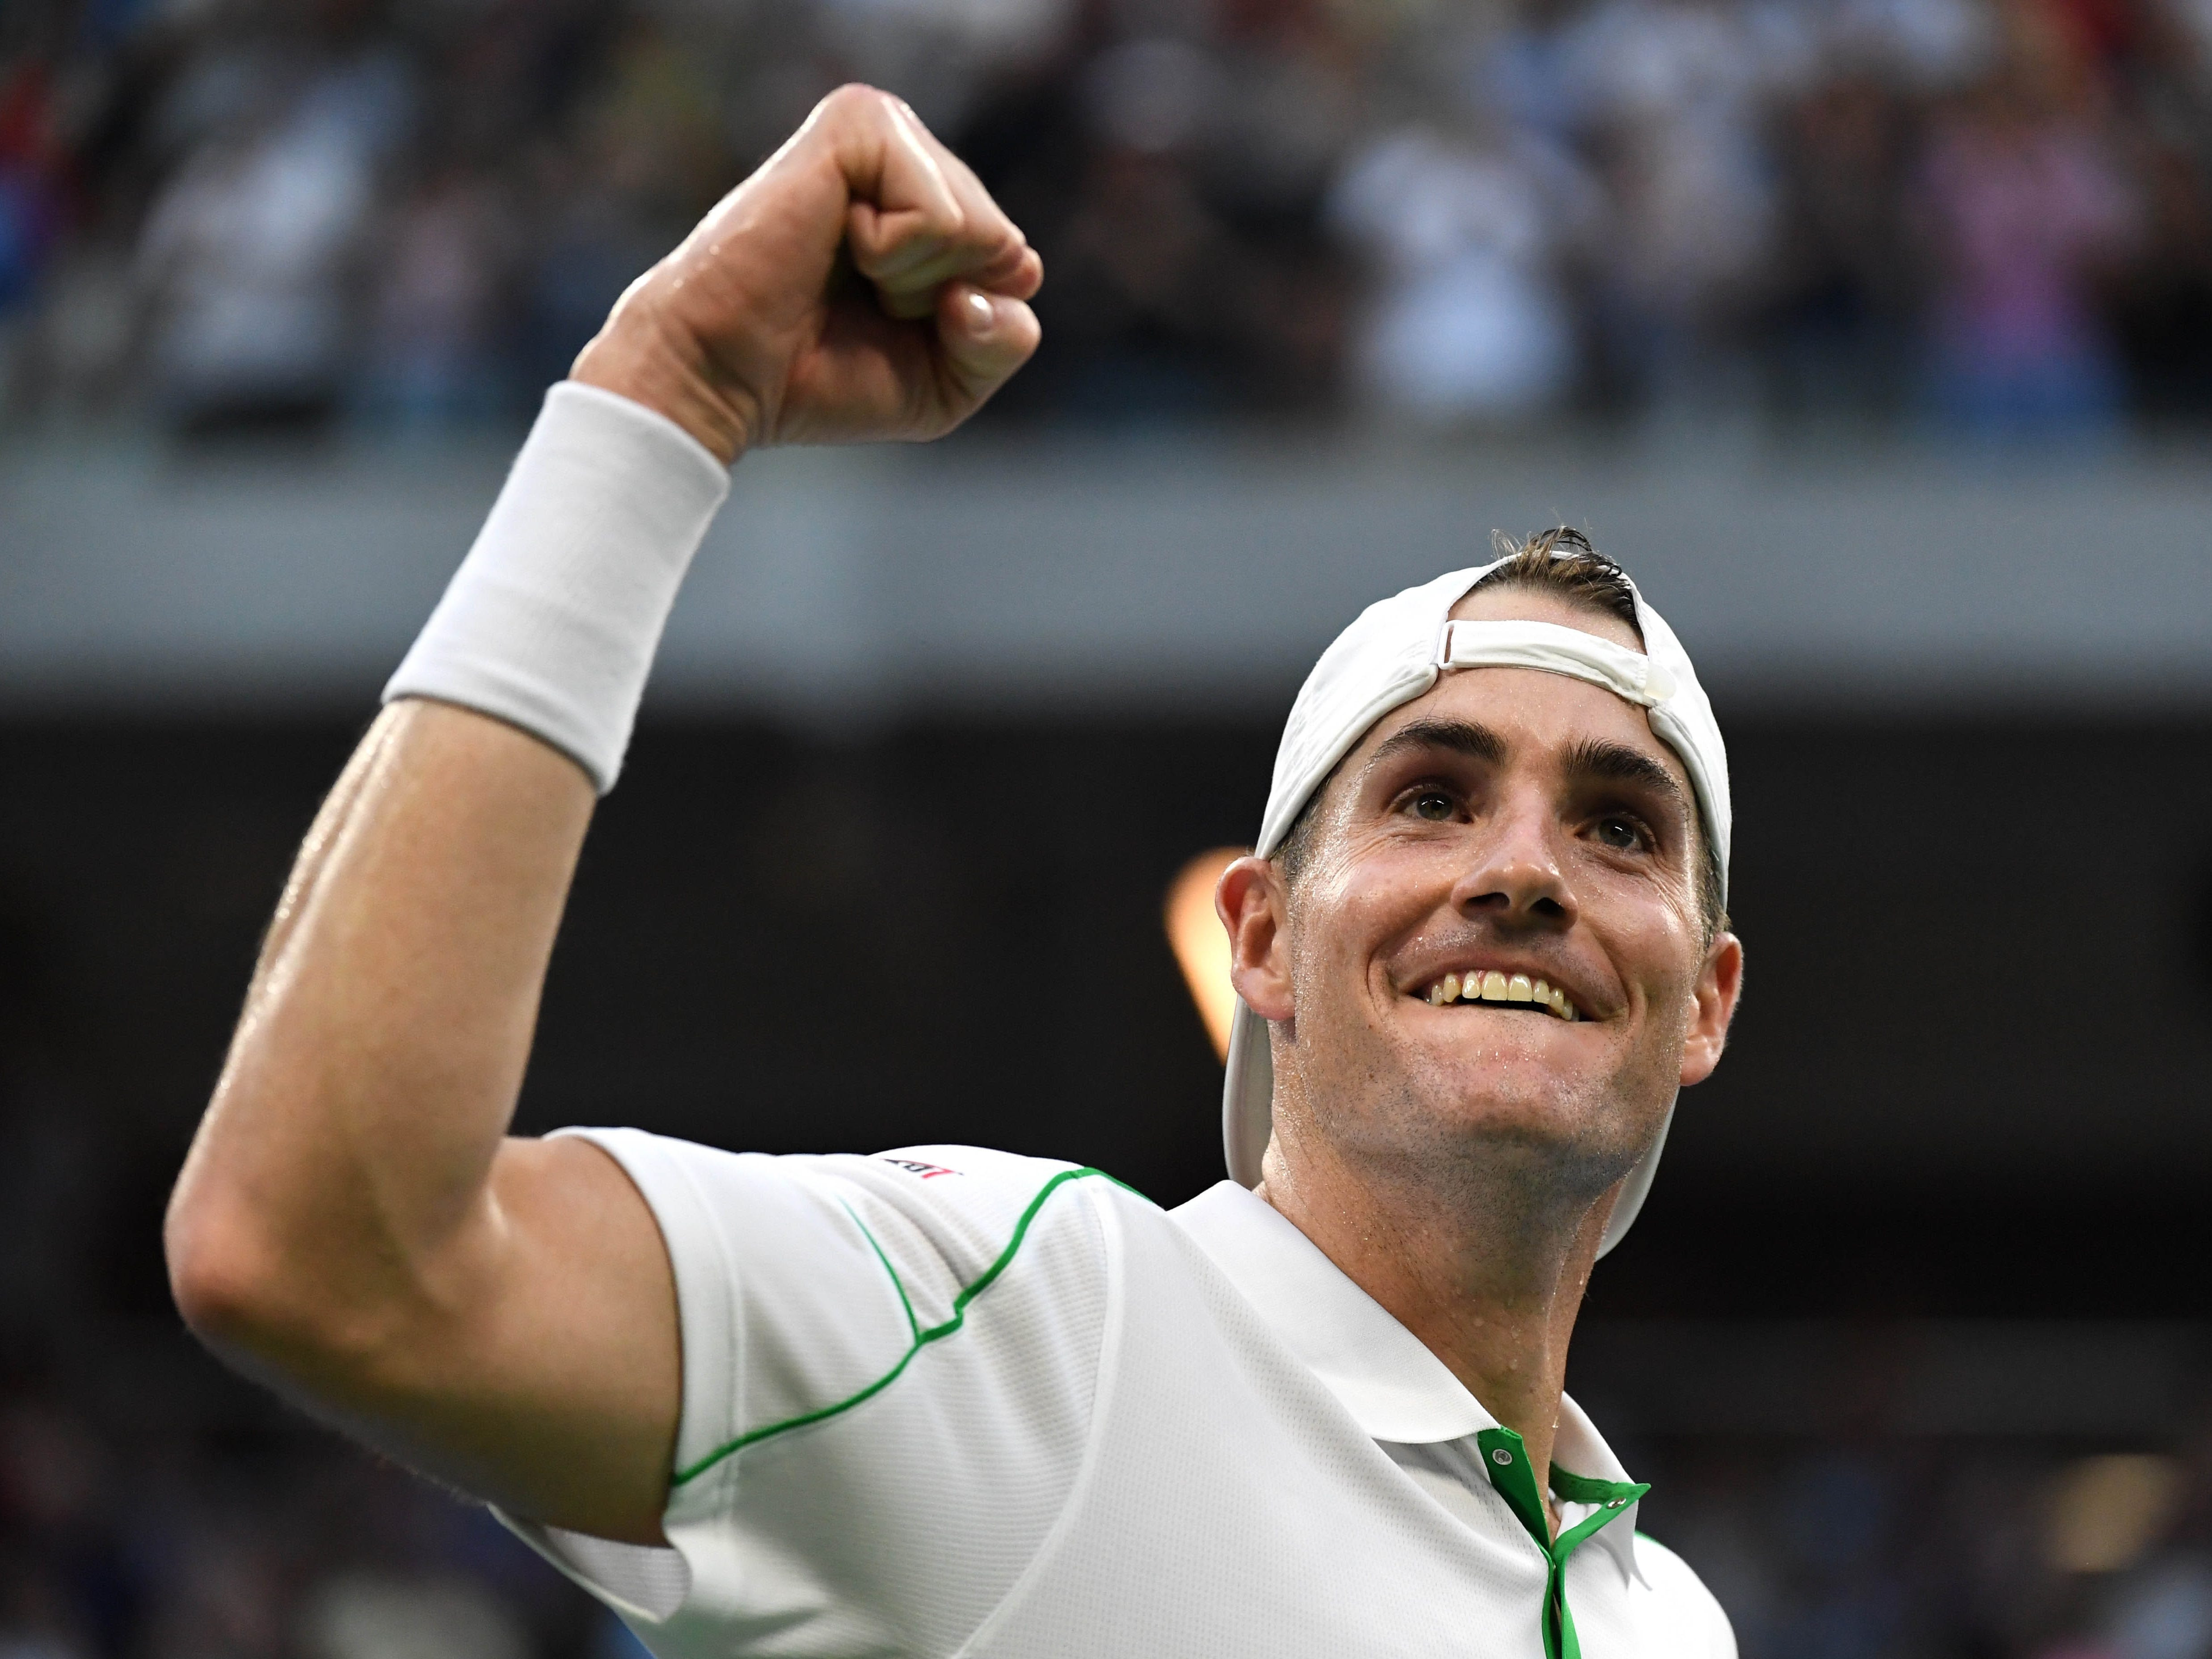 John Isner celebrates after defeating Milos Raonic in the fourth round.